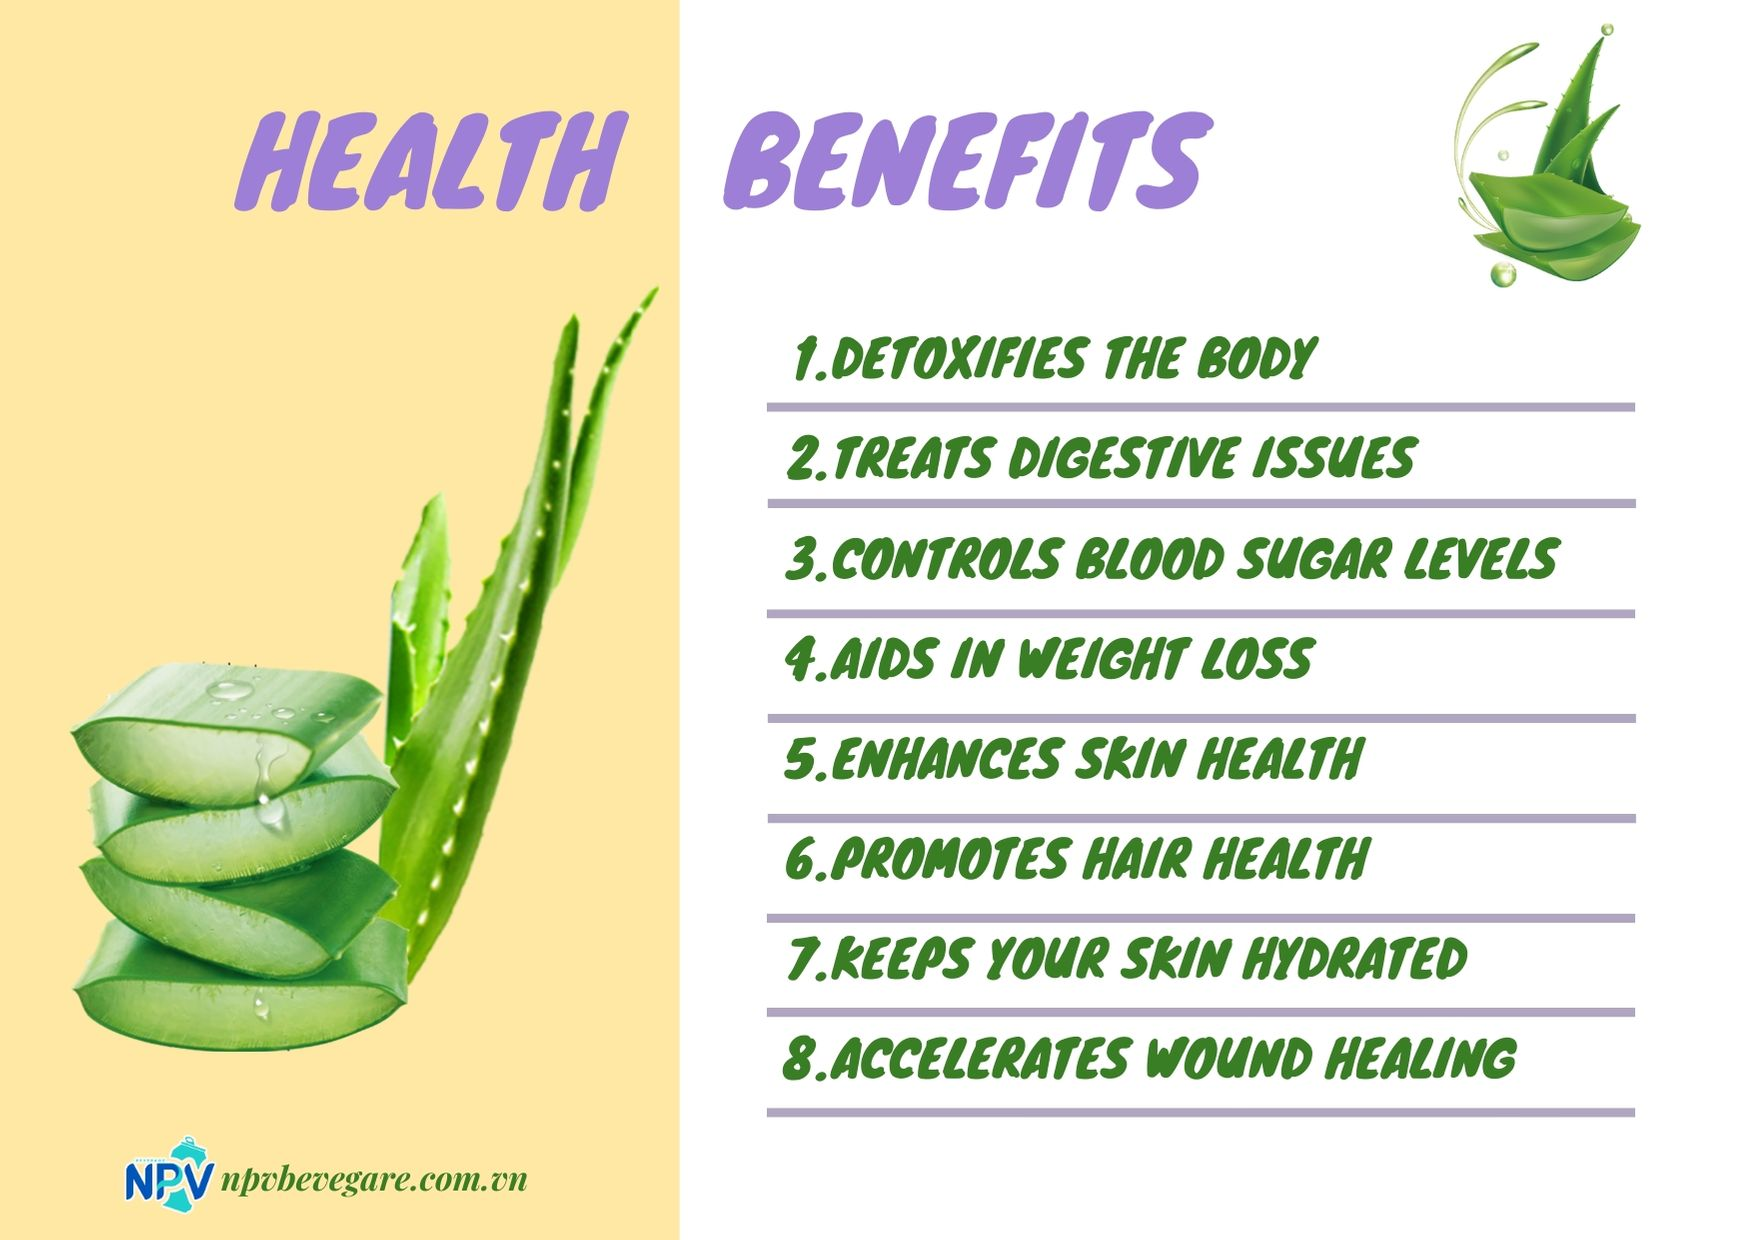 Aloe vera has many health benefits